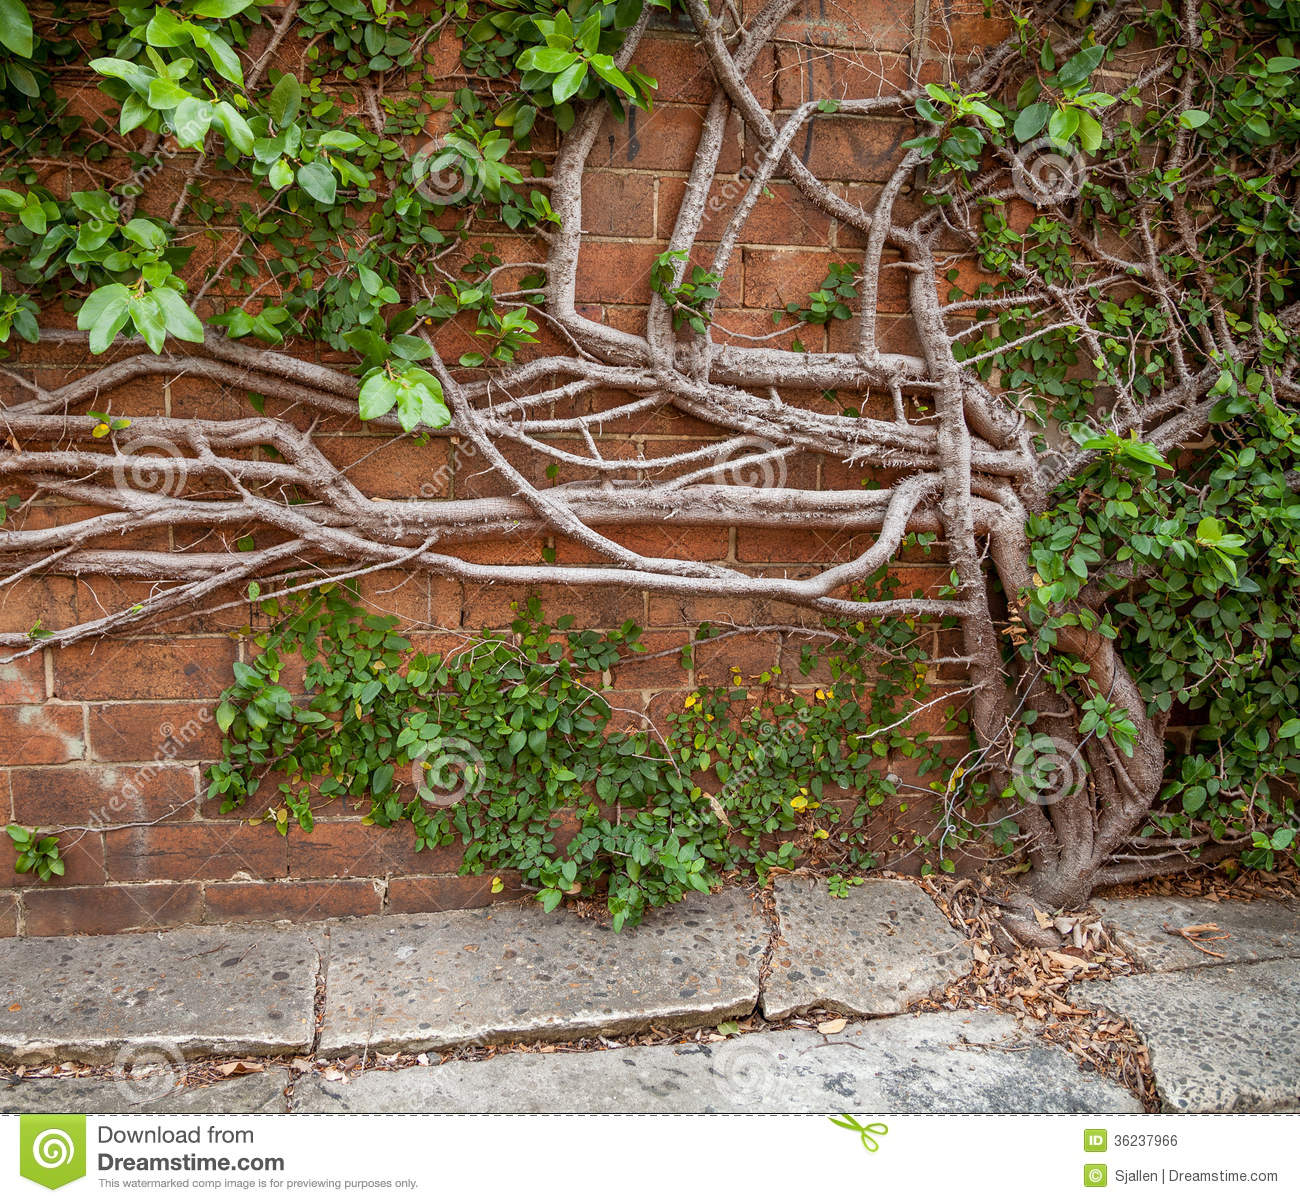 Creeping Fig Growing Out Of Concrete And Up A Brick Wall